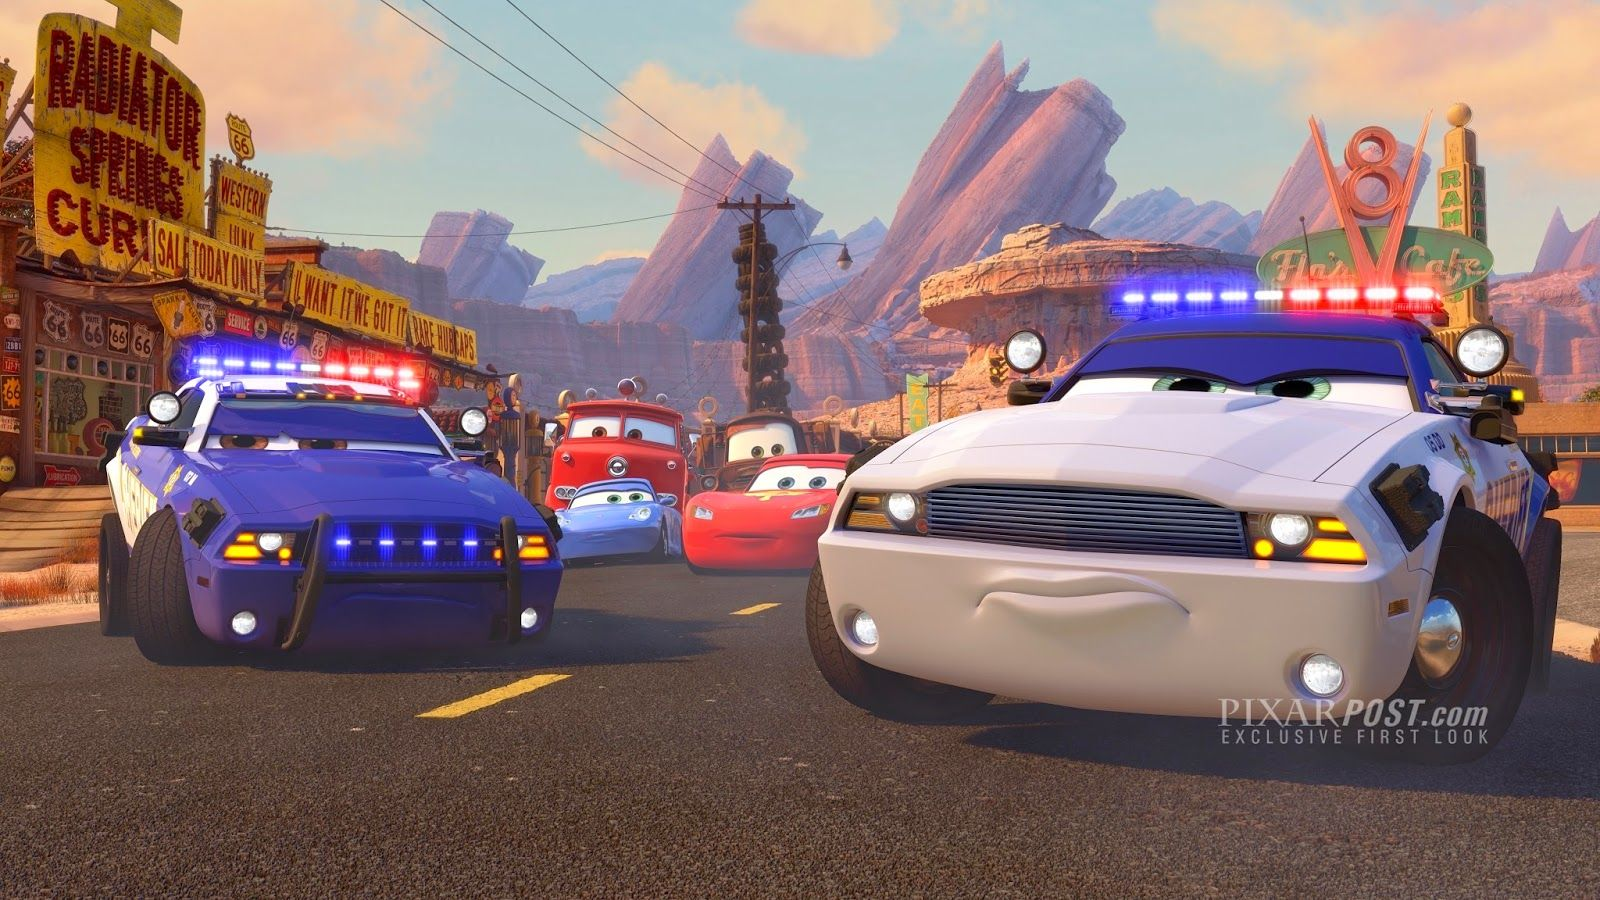 Exclusive first look at the upcoming cars toon to protect and serve http